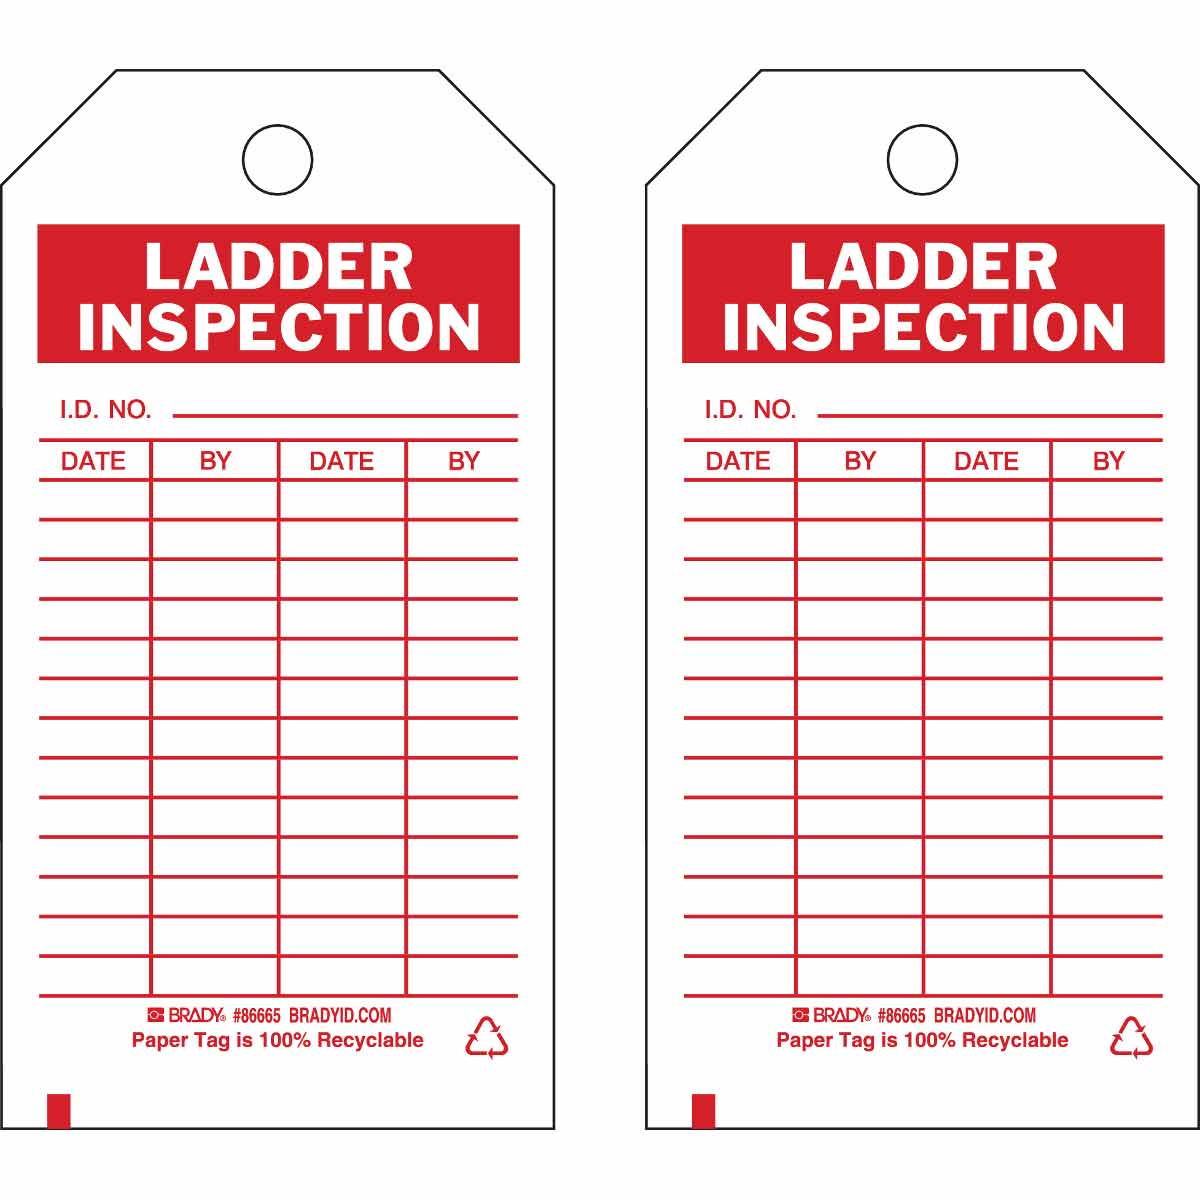 Brady® 86564 Rectangular Inspection and Material Control Tag, 5-3/4 in H x 3 in W, Green on White, 3/8 in Hole, B-851 Polyester